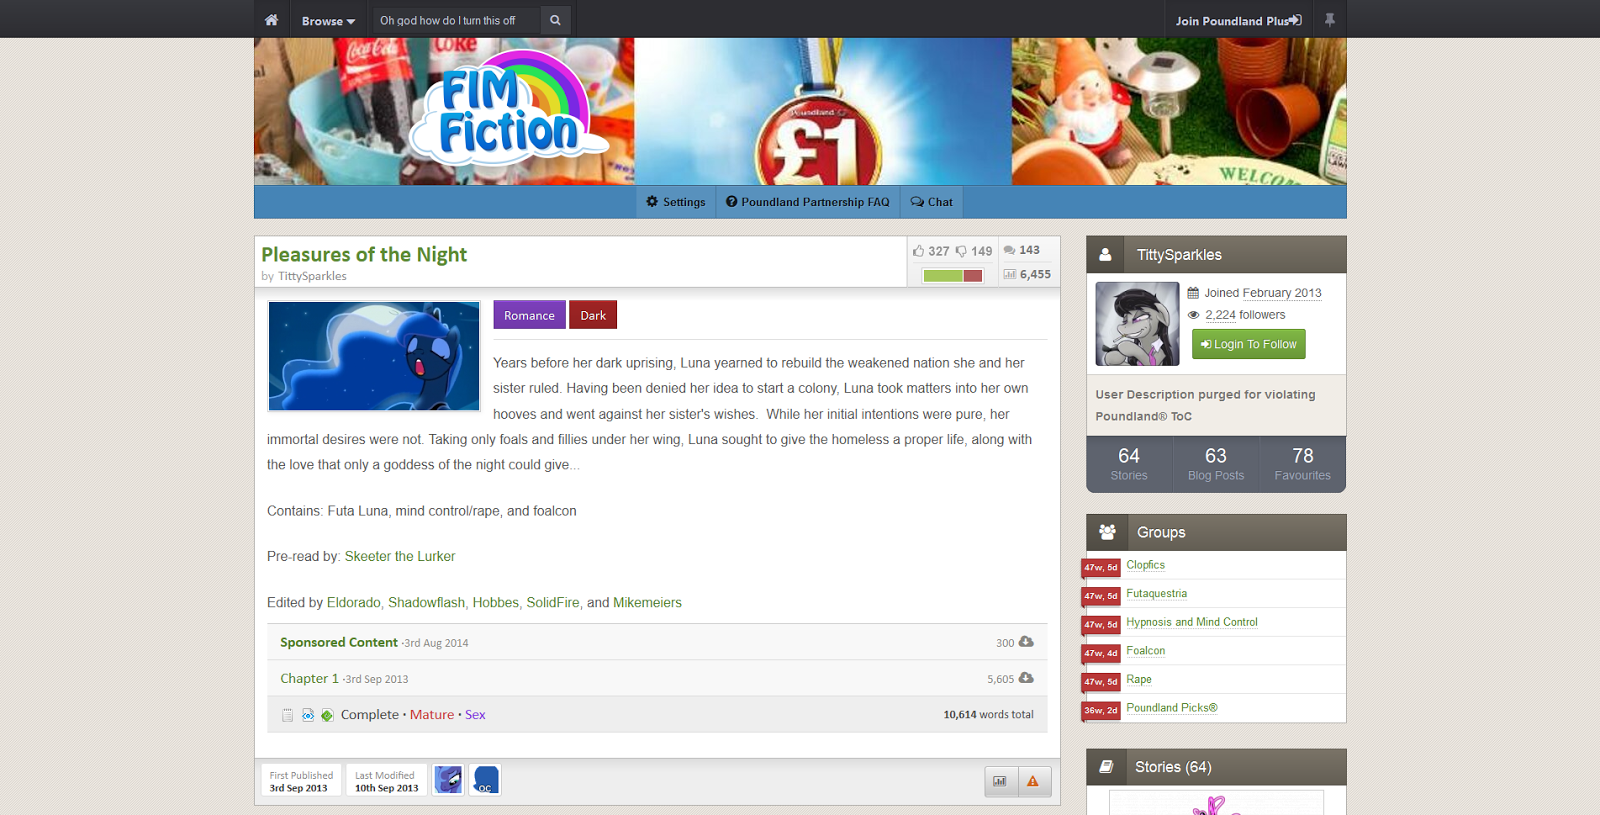 Generic Fimfiction screenshot